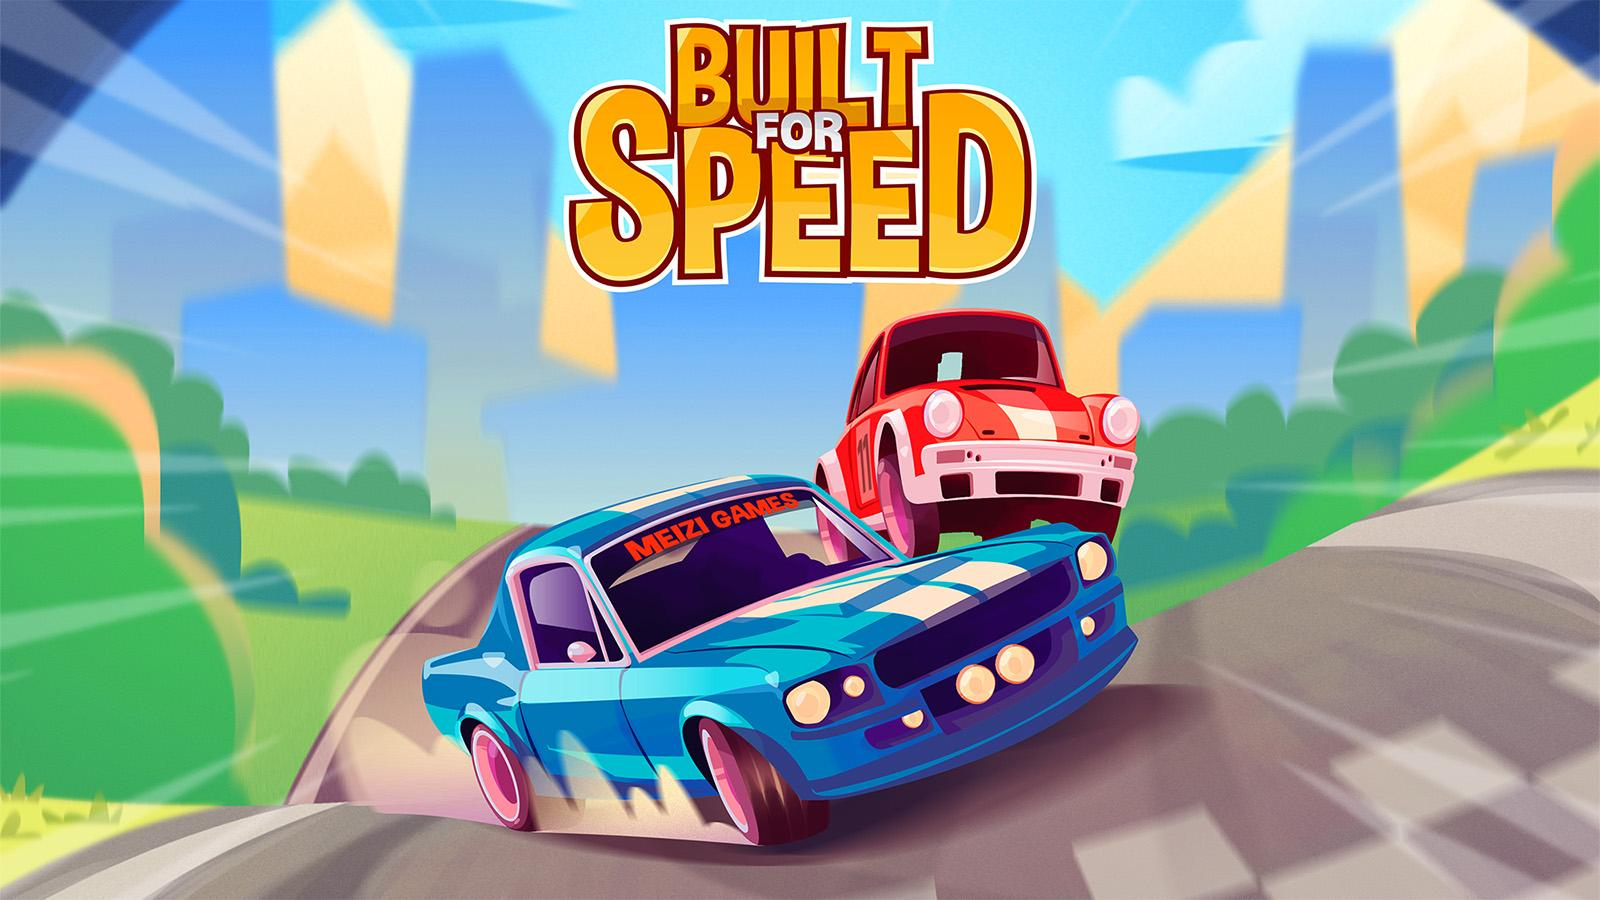 Built for Speed Screenshot 5